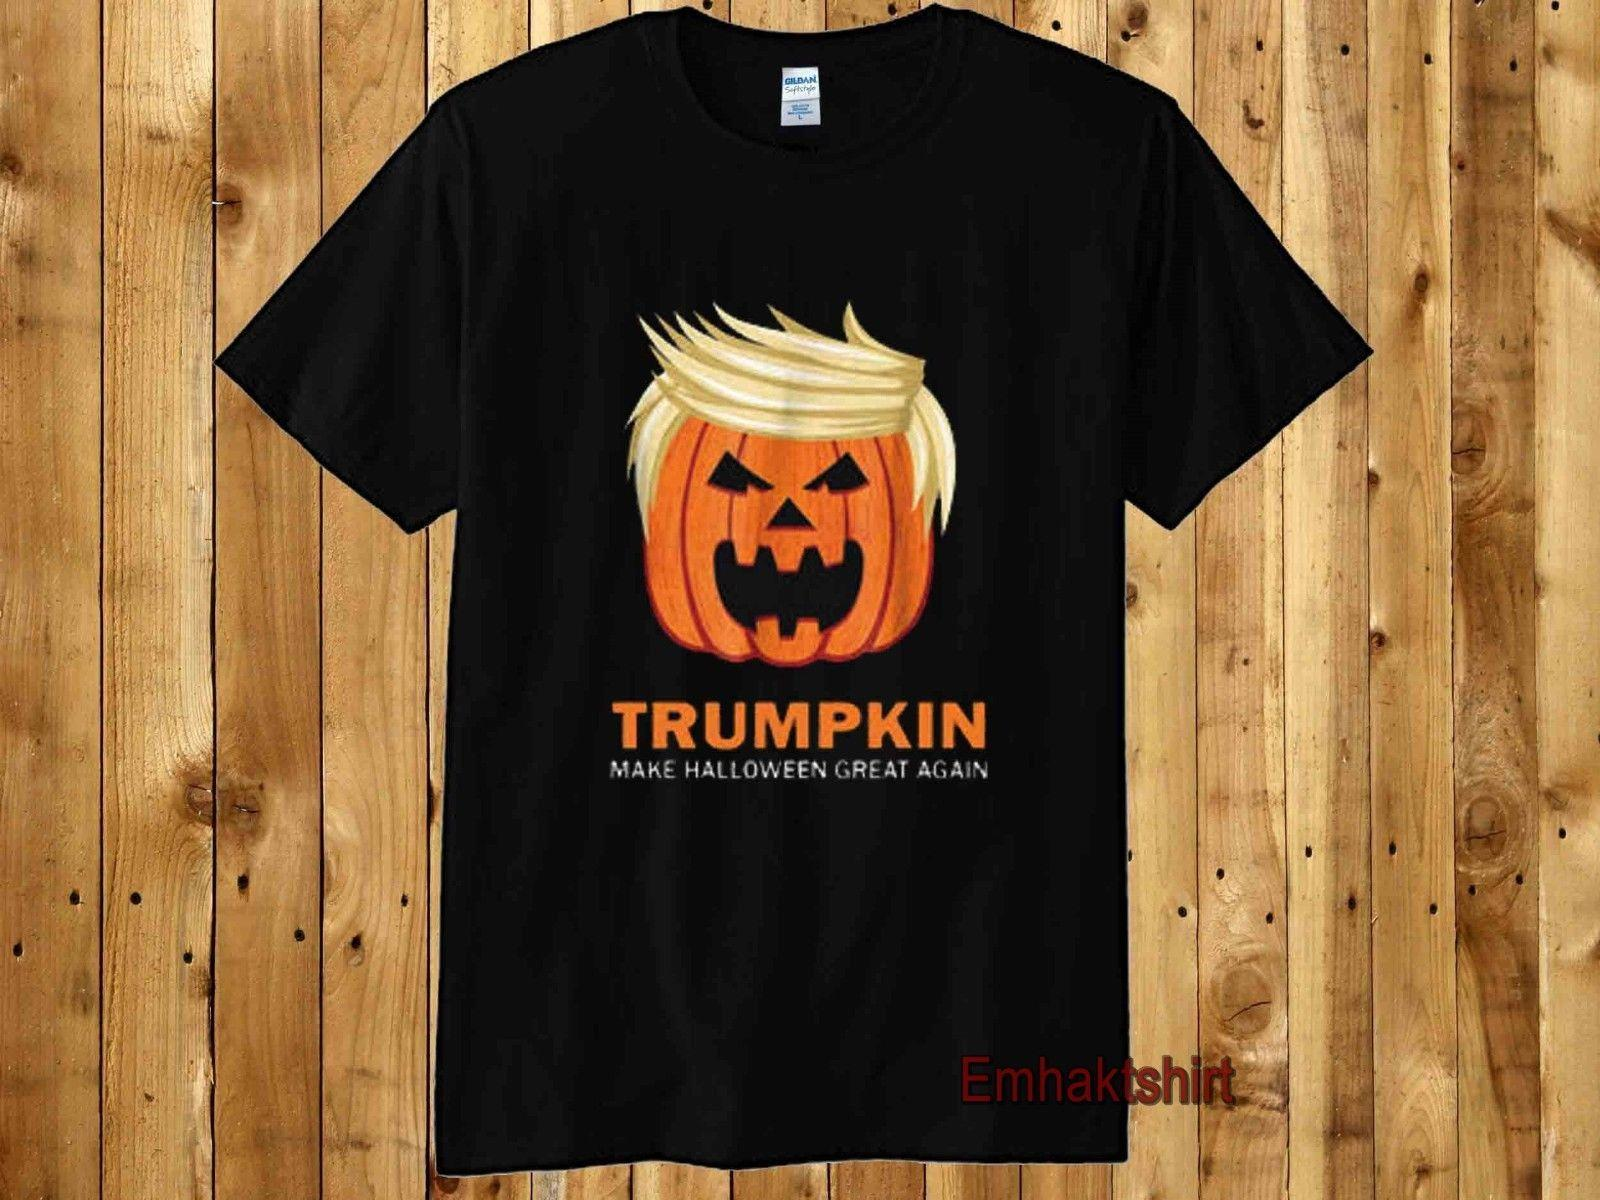 a7a90e2decd Halloween Trumpkin Funny Inspired T Shirt Make Halloween Great Again Costume  Fashion T Shirt Men S Short O Neck Fashion Printed Best T Shirts Sites  Quirky T ...